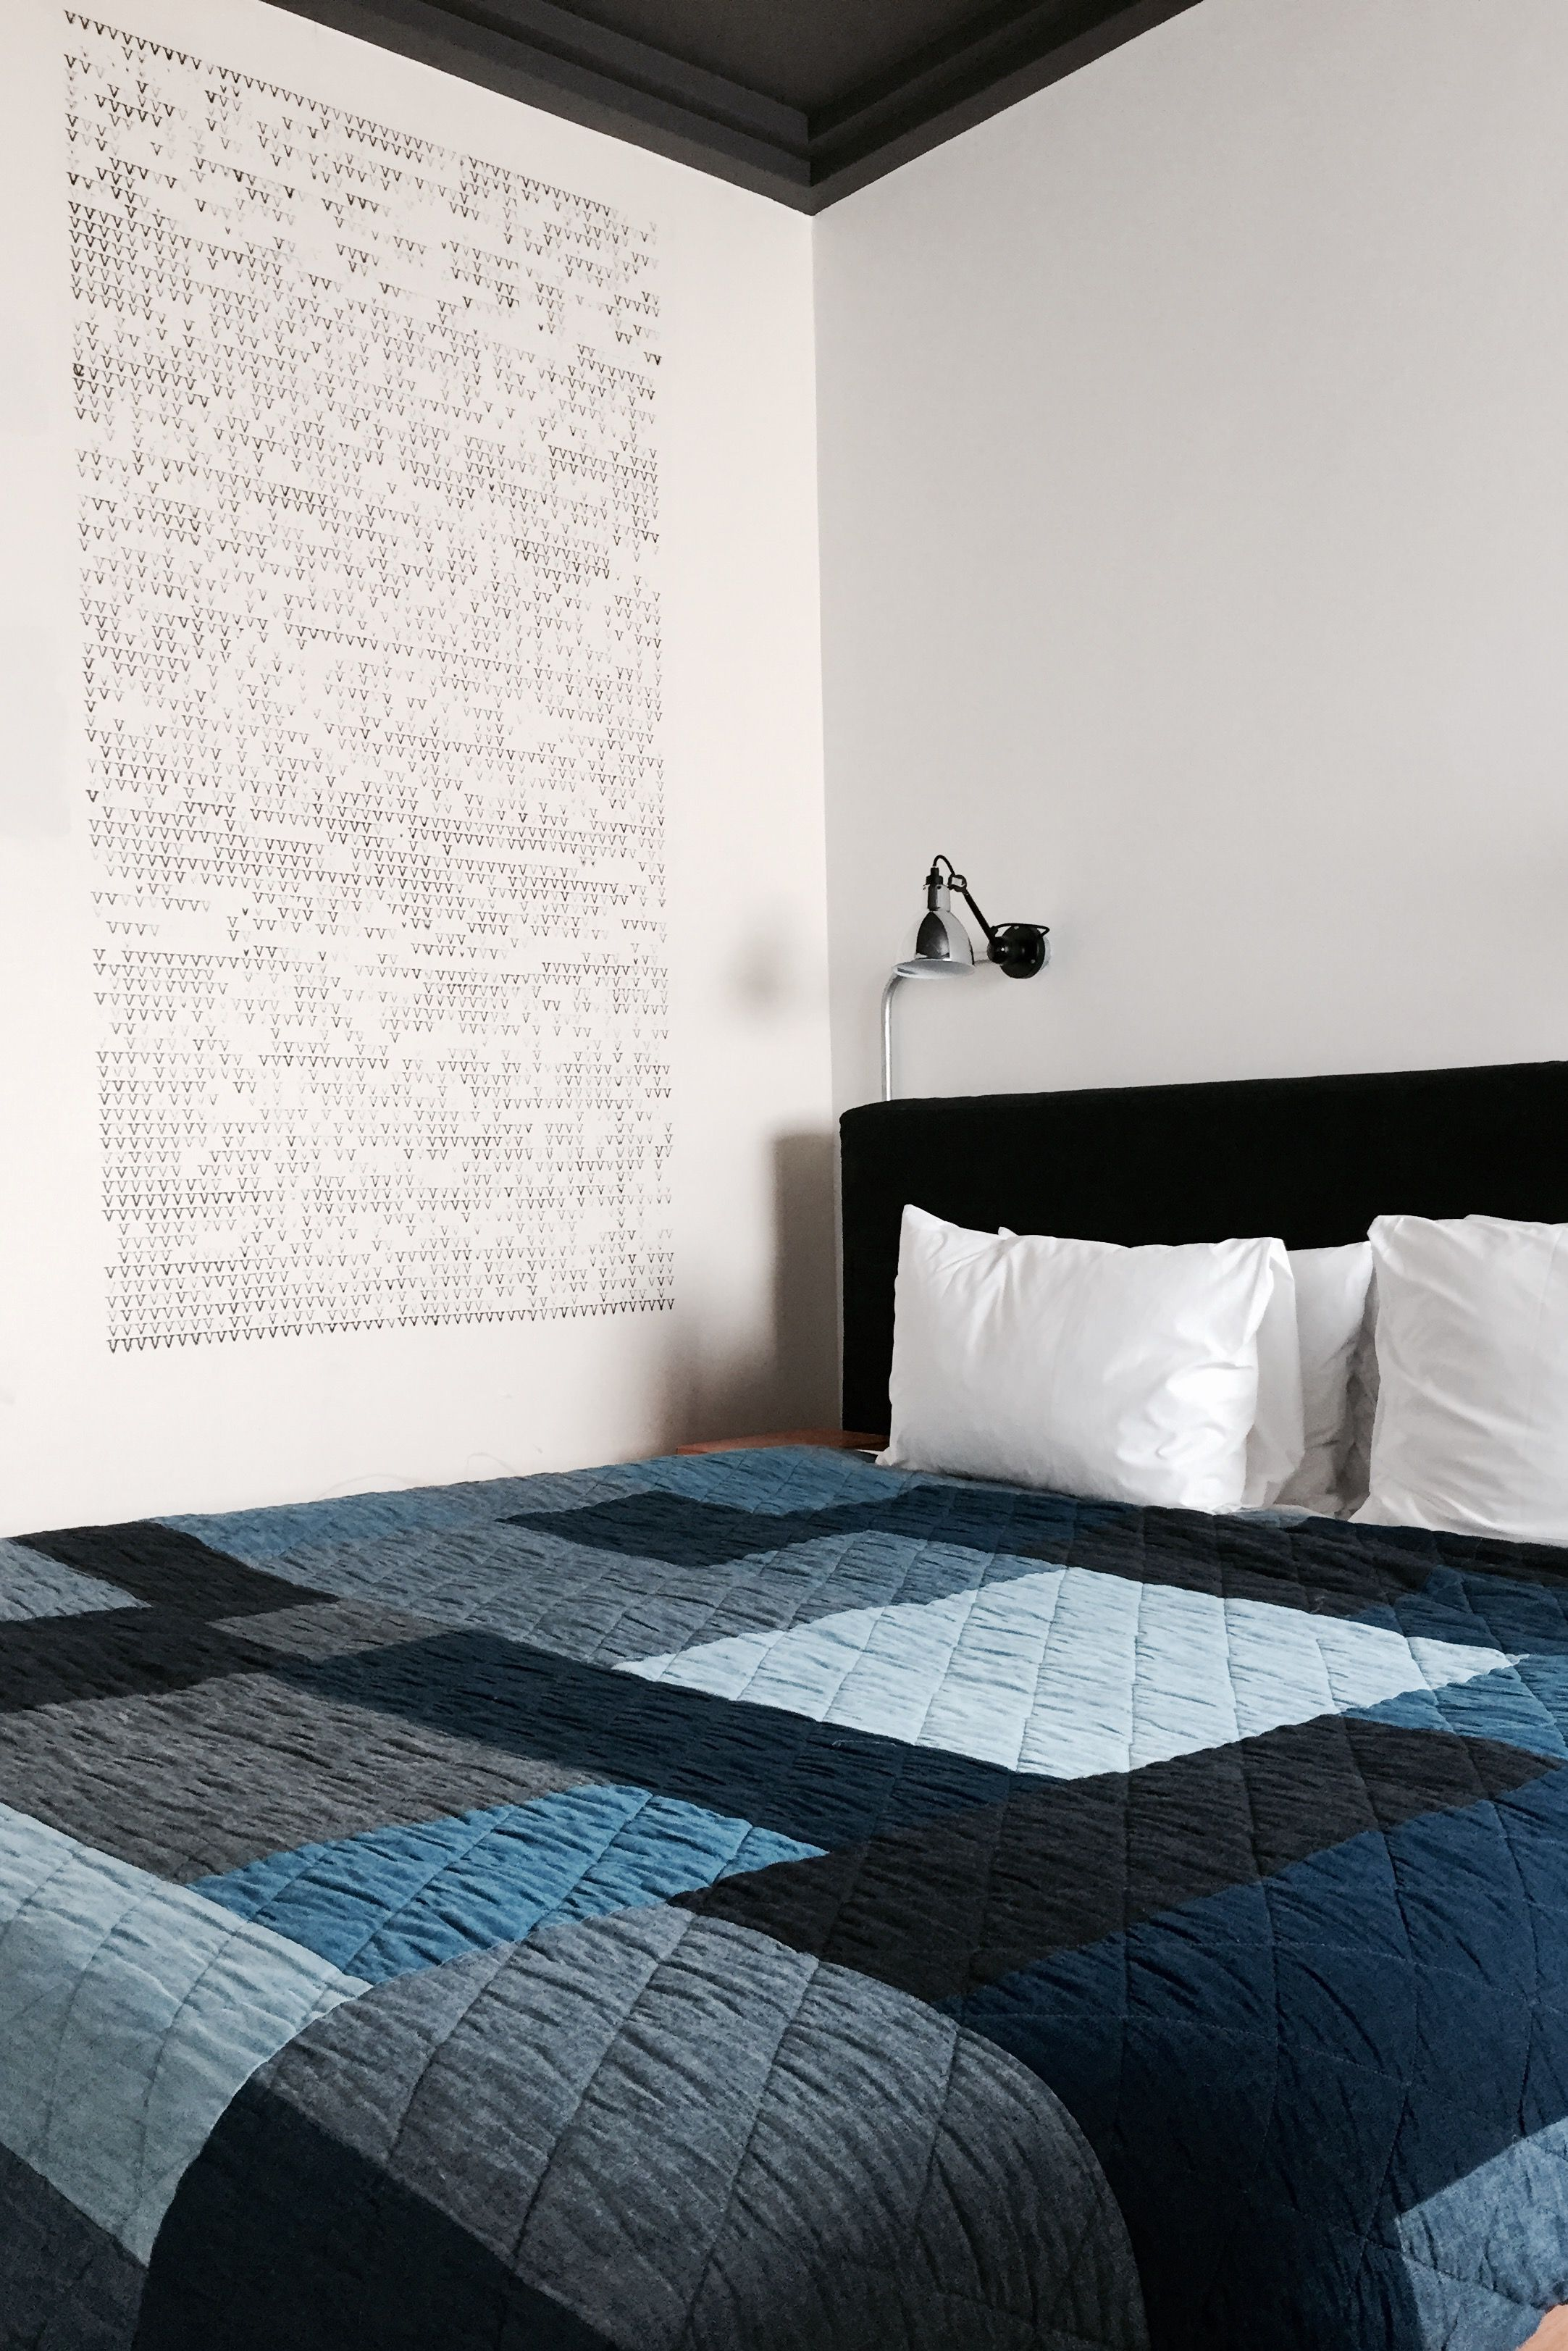 A.P.C. QUILTS : AT THE ACE HOTEL LONDON SHOREDITCH | A.P.C. QUILTS ... : hotel quilts - Adamdwight.com